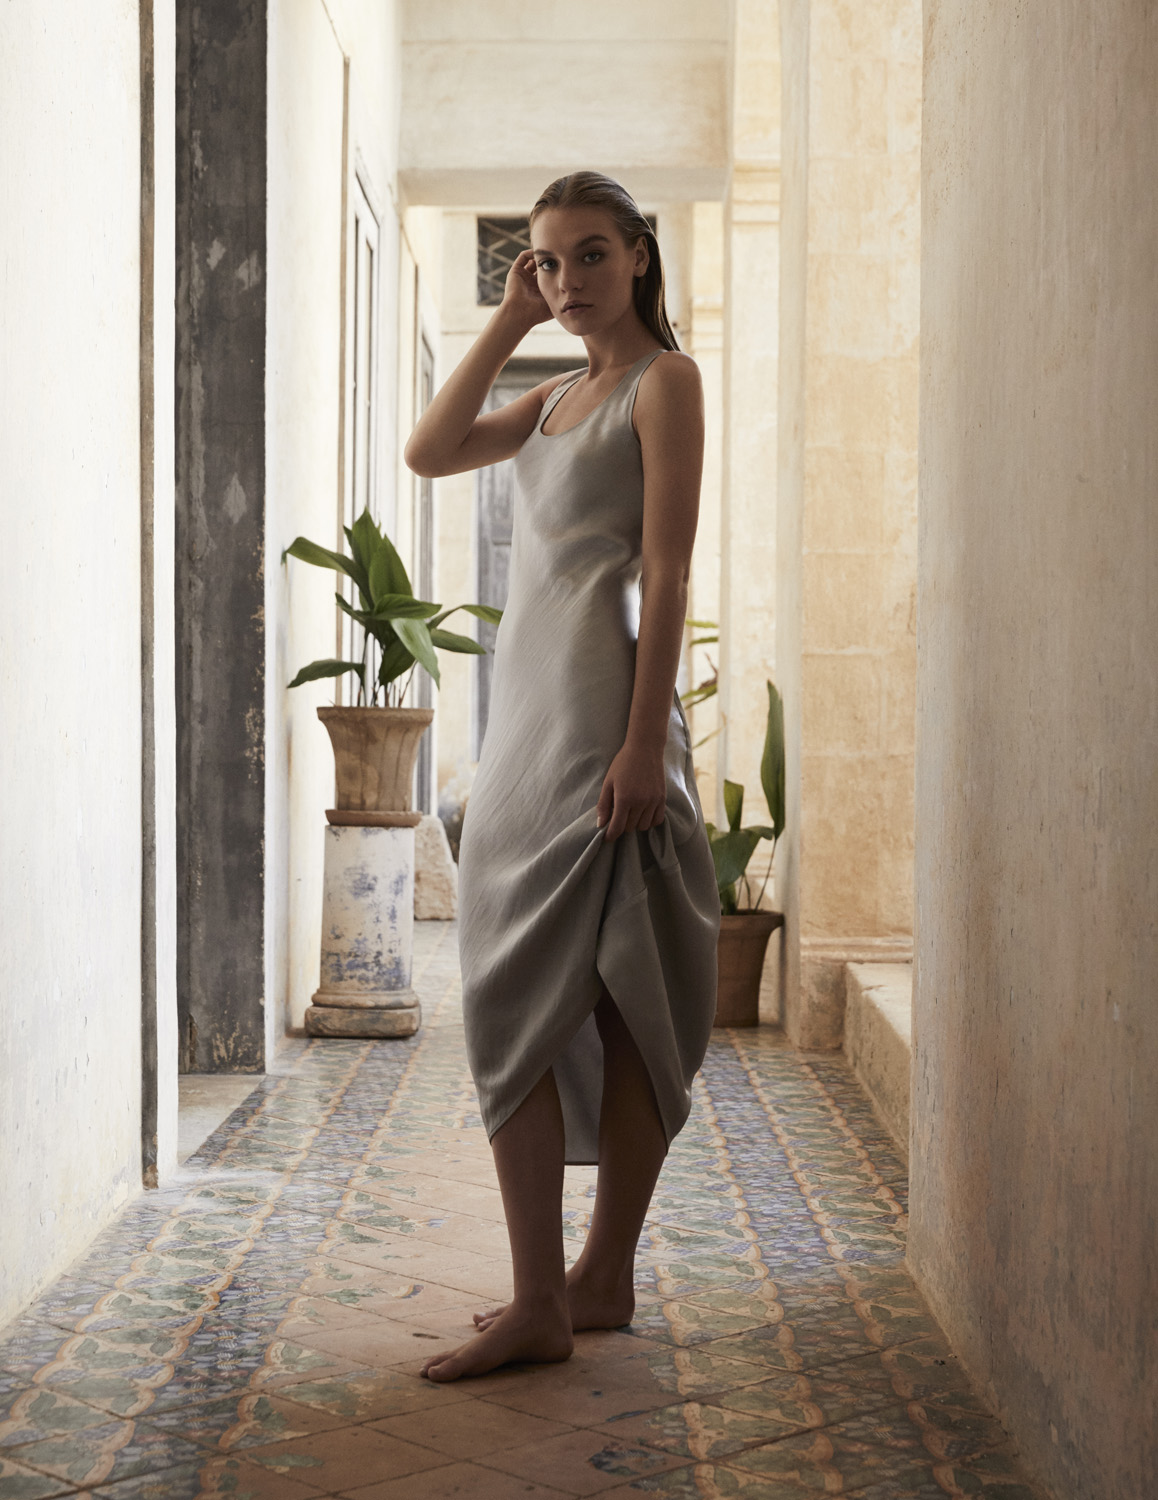 2. kép: Max Mara Leisure Collection